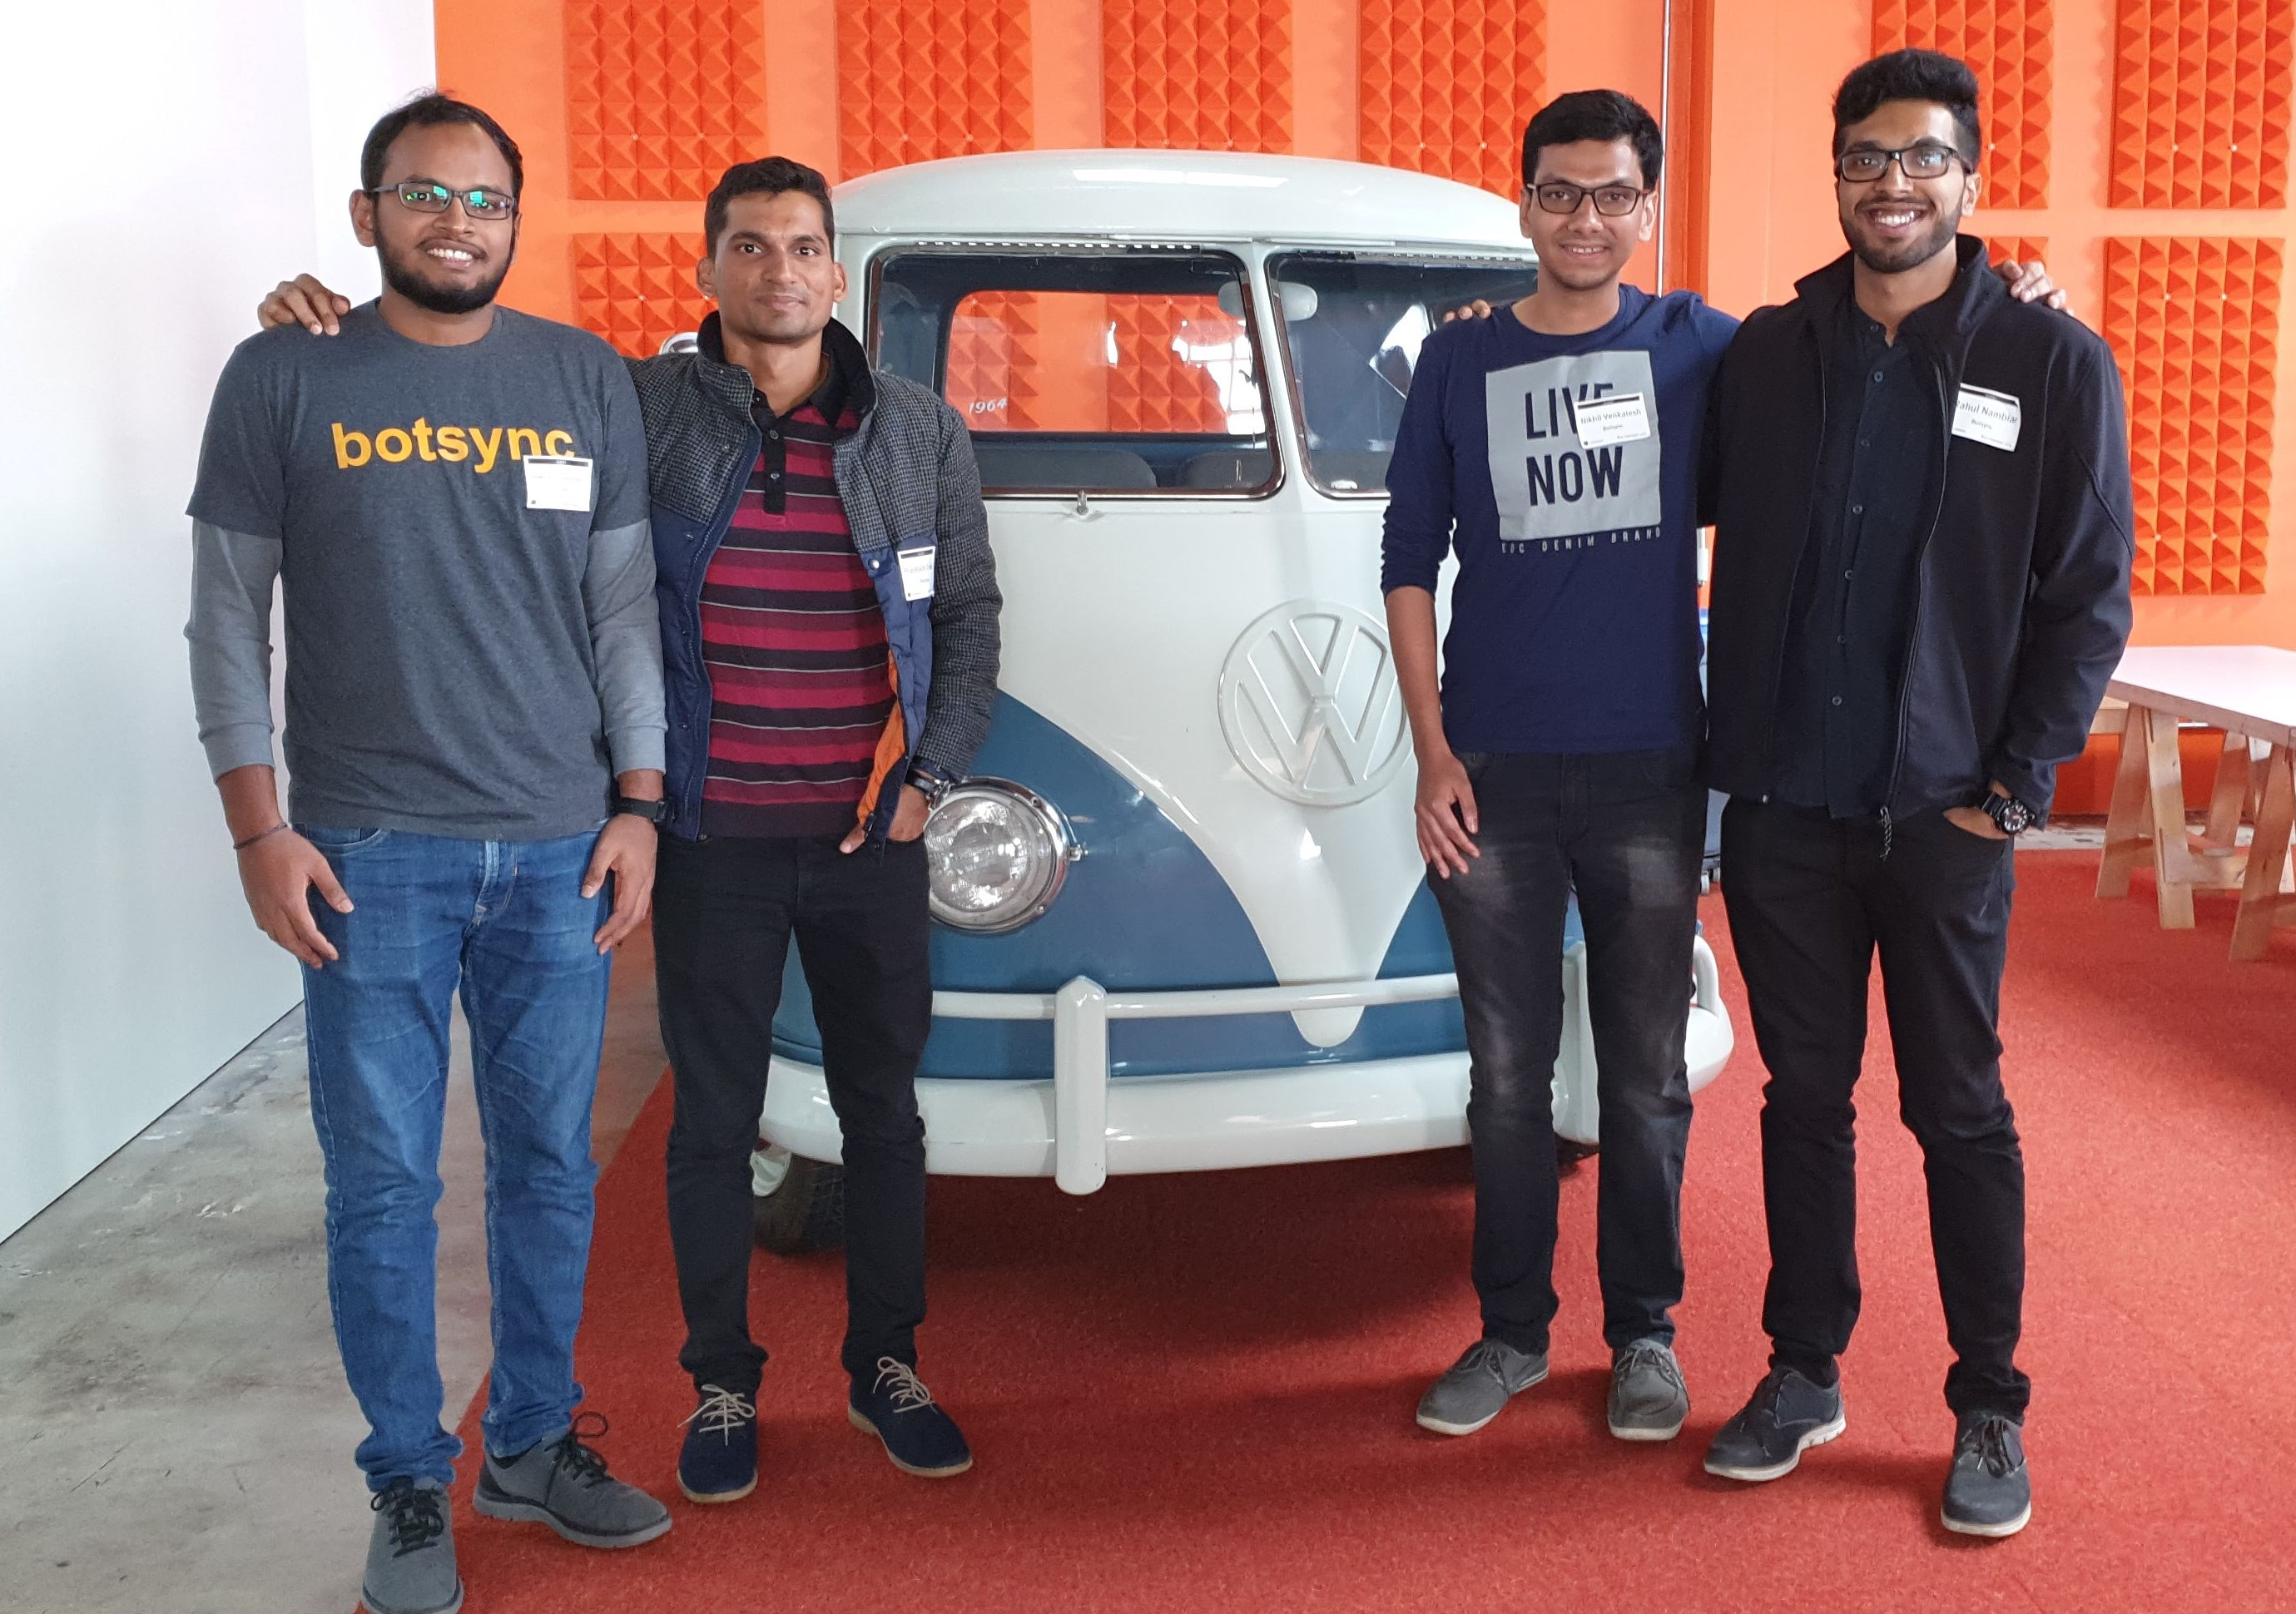 The Botsync Team - Nikhil Venkatesh, Prashant Trivedi, Singaram Venkatachalam and Rahul Nambiar. Photo Courtesy: Botsync